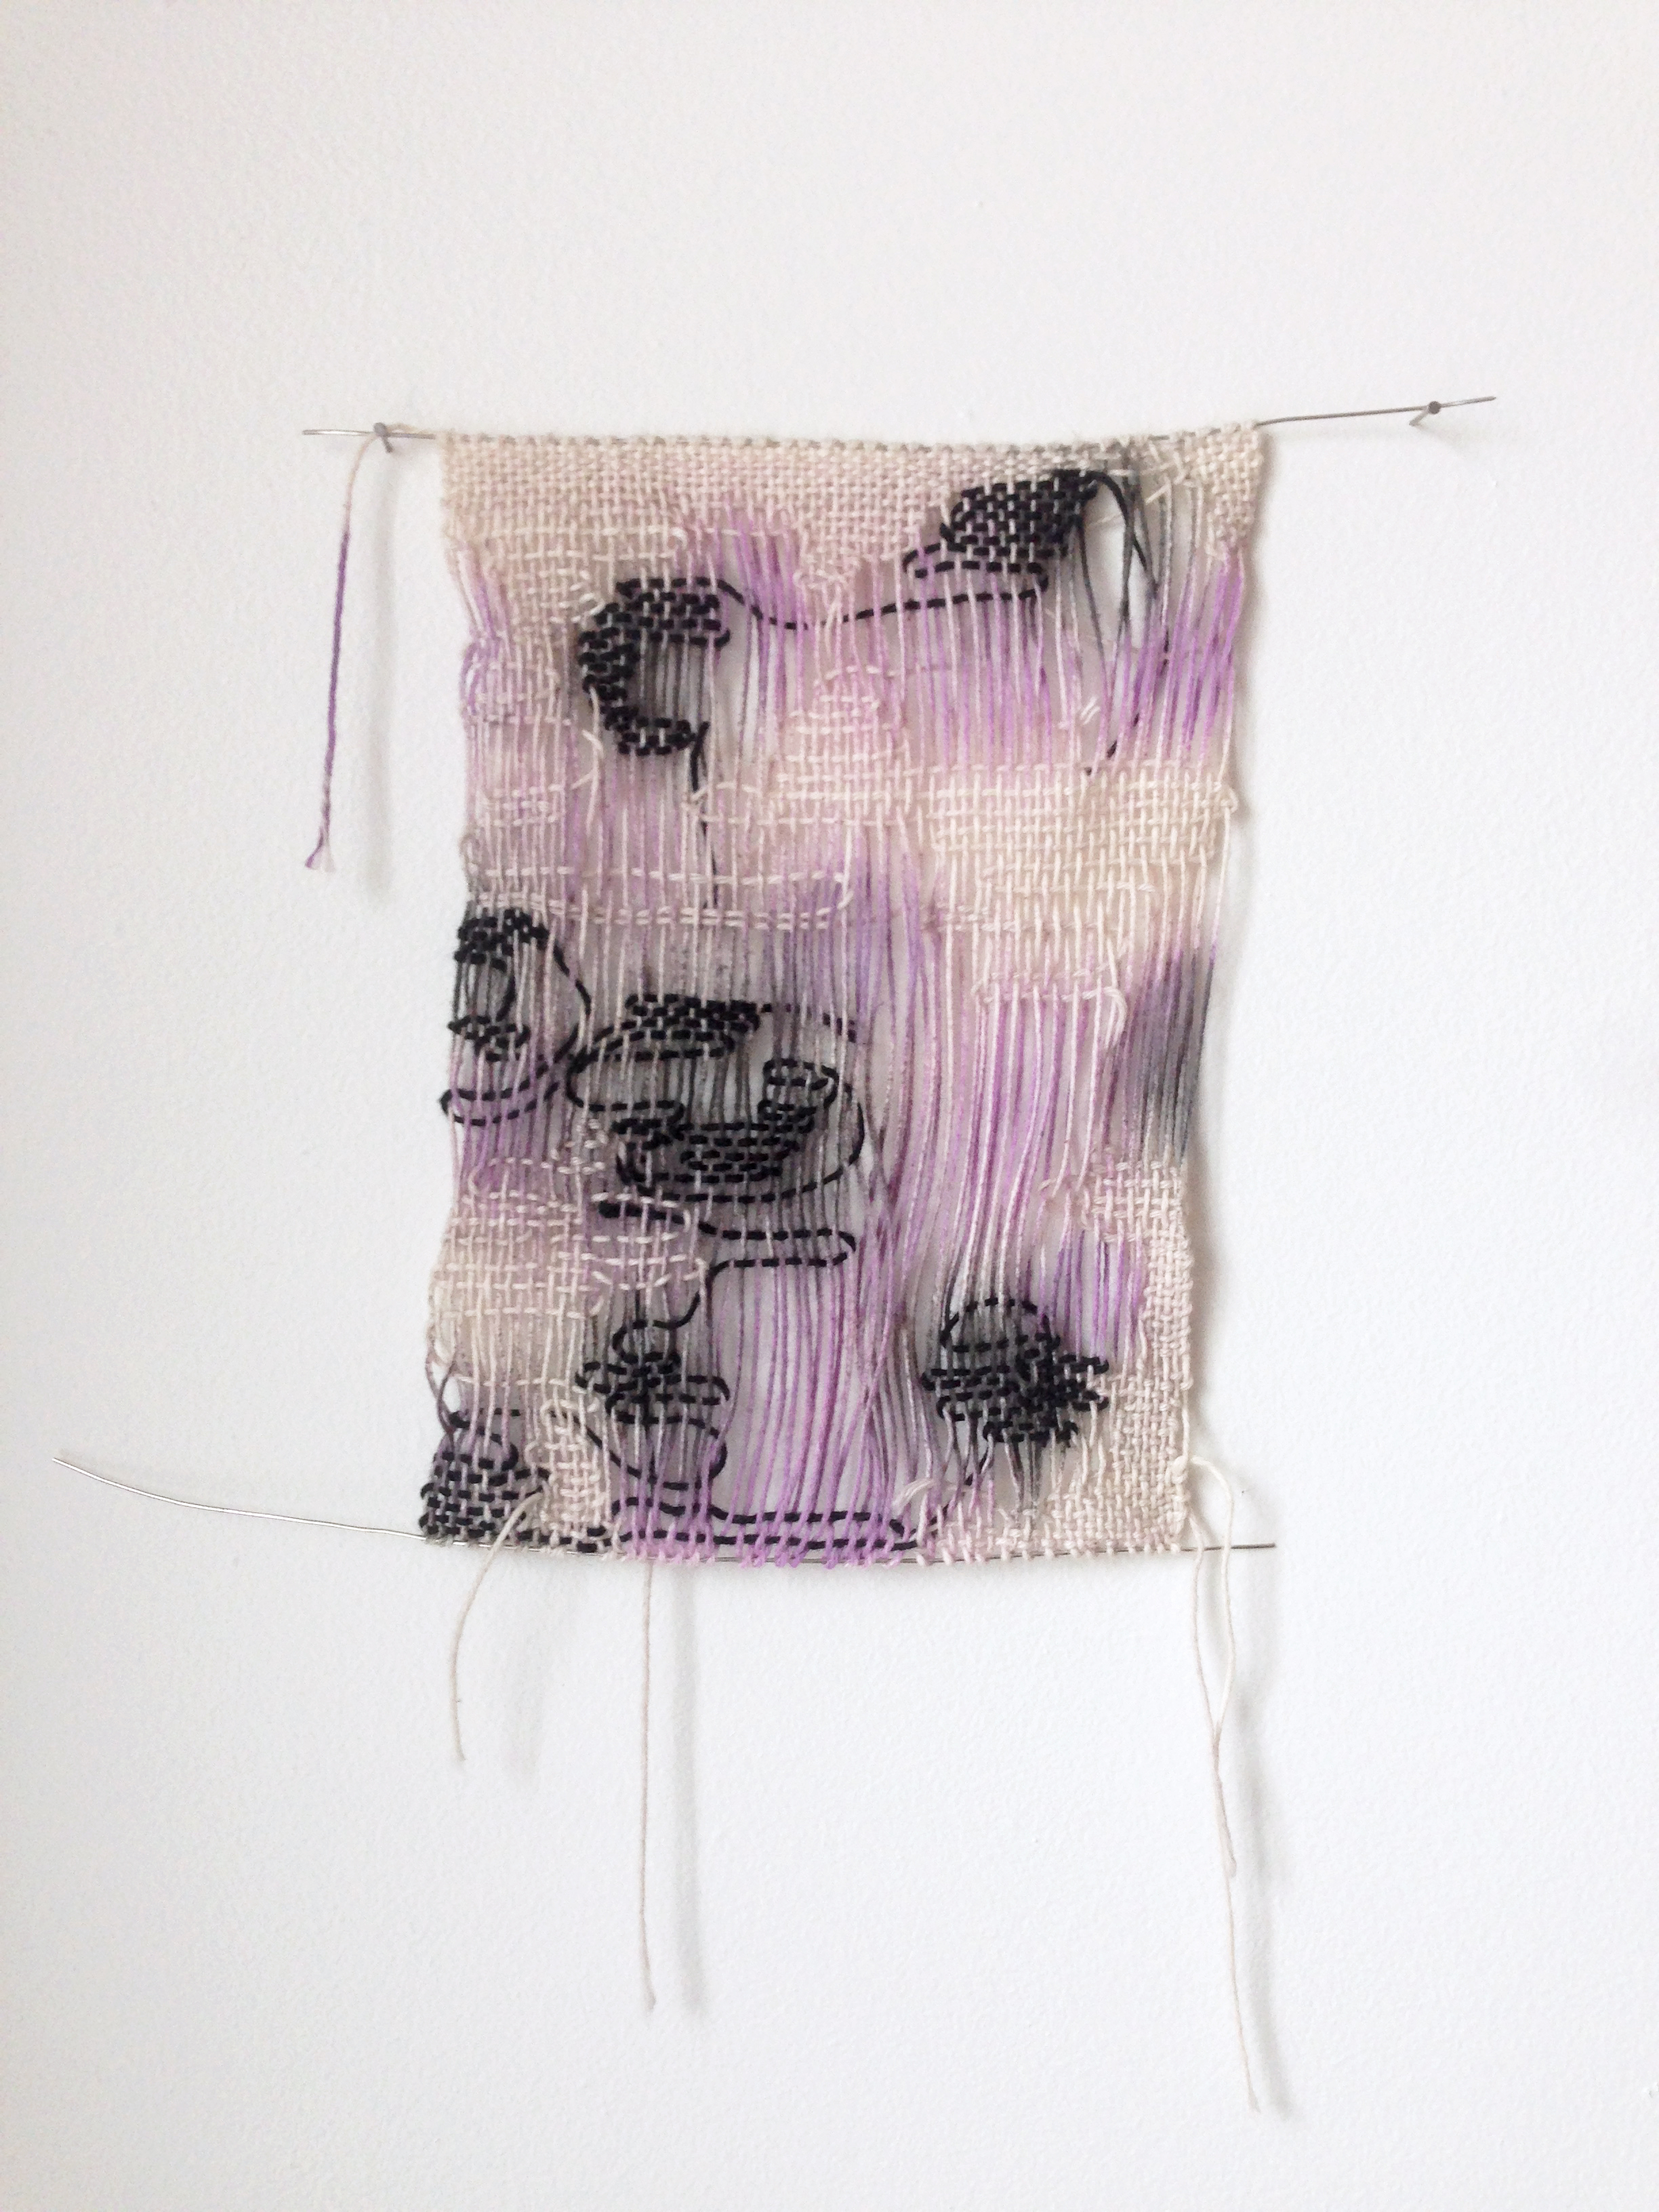 Untitled (Loose Weave)